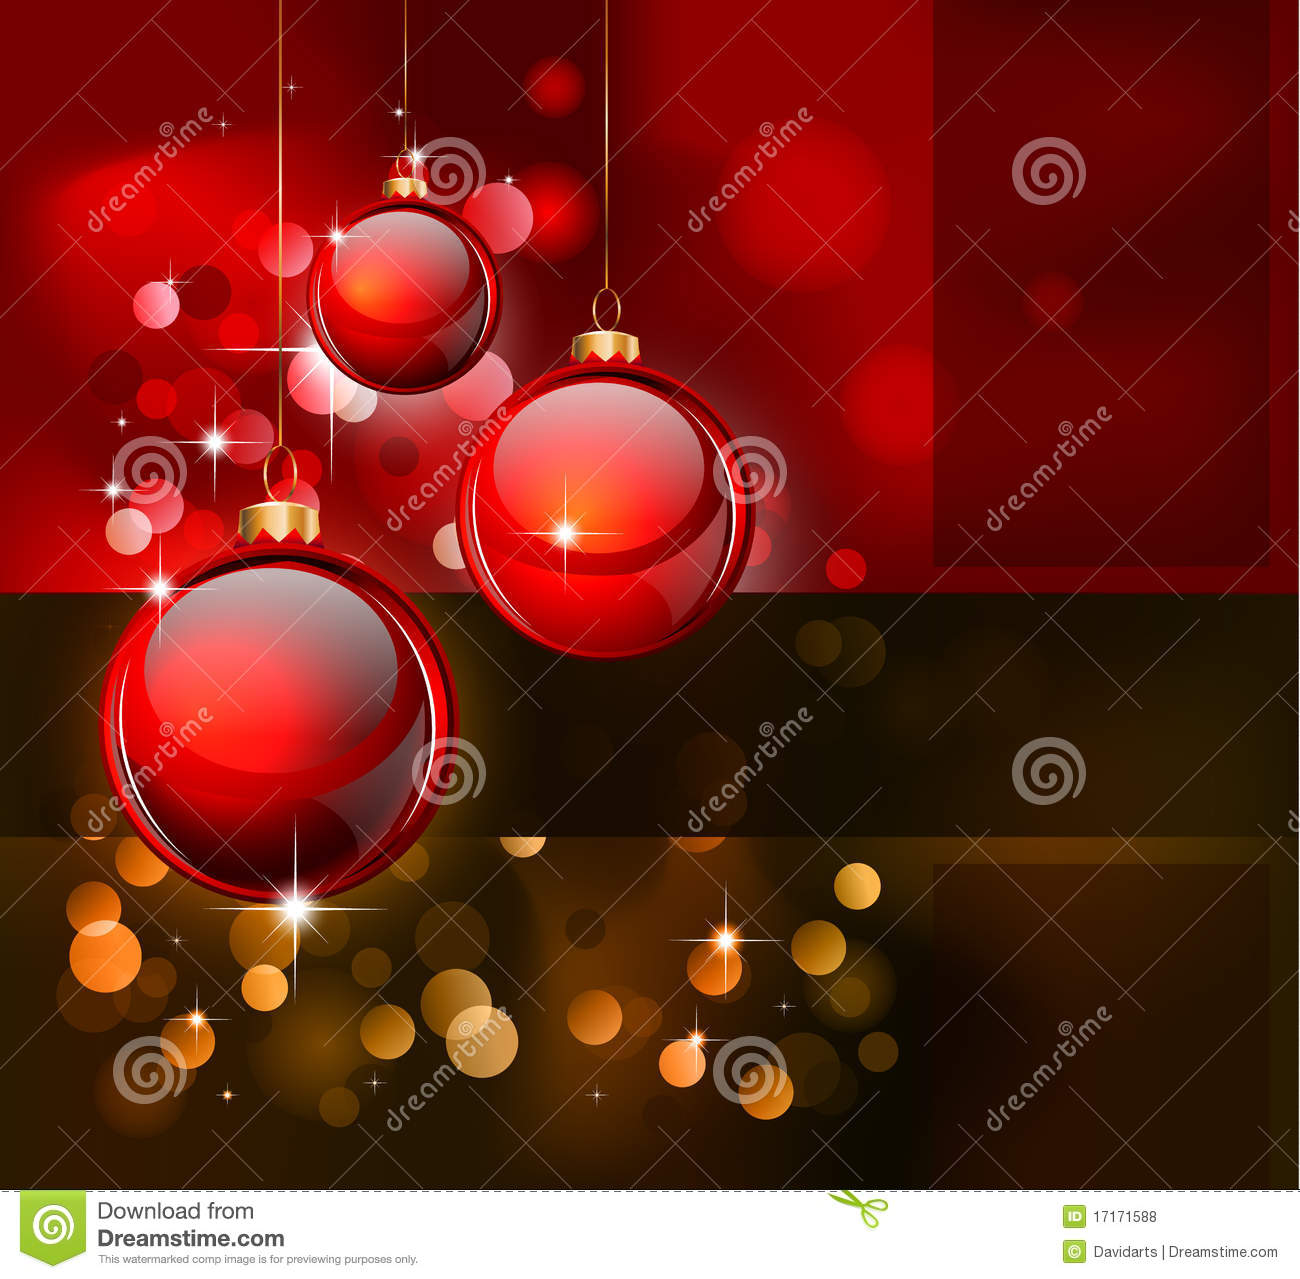 christmas elegant background for flyers or posters stock image christmas elegant background for flyers or posters royalty stock photos